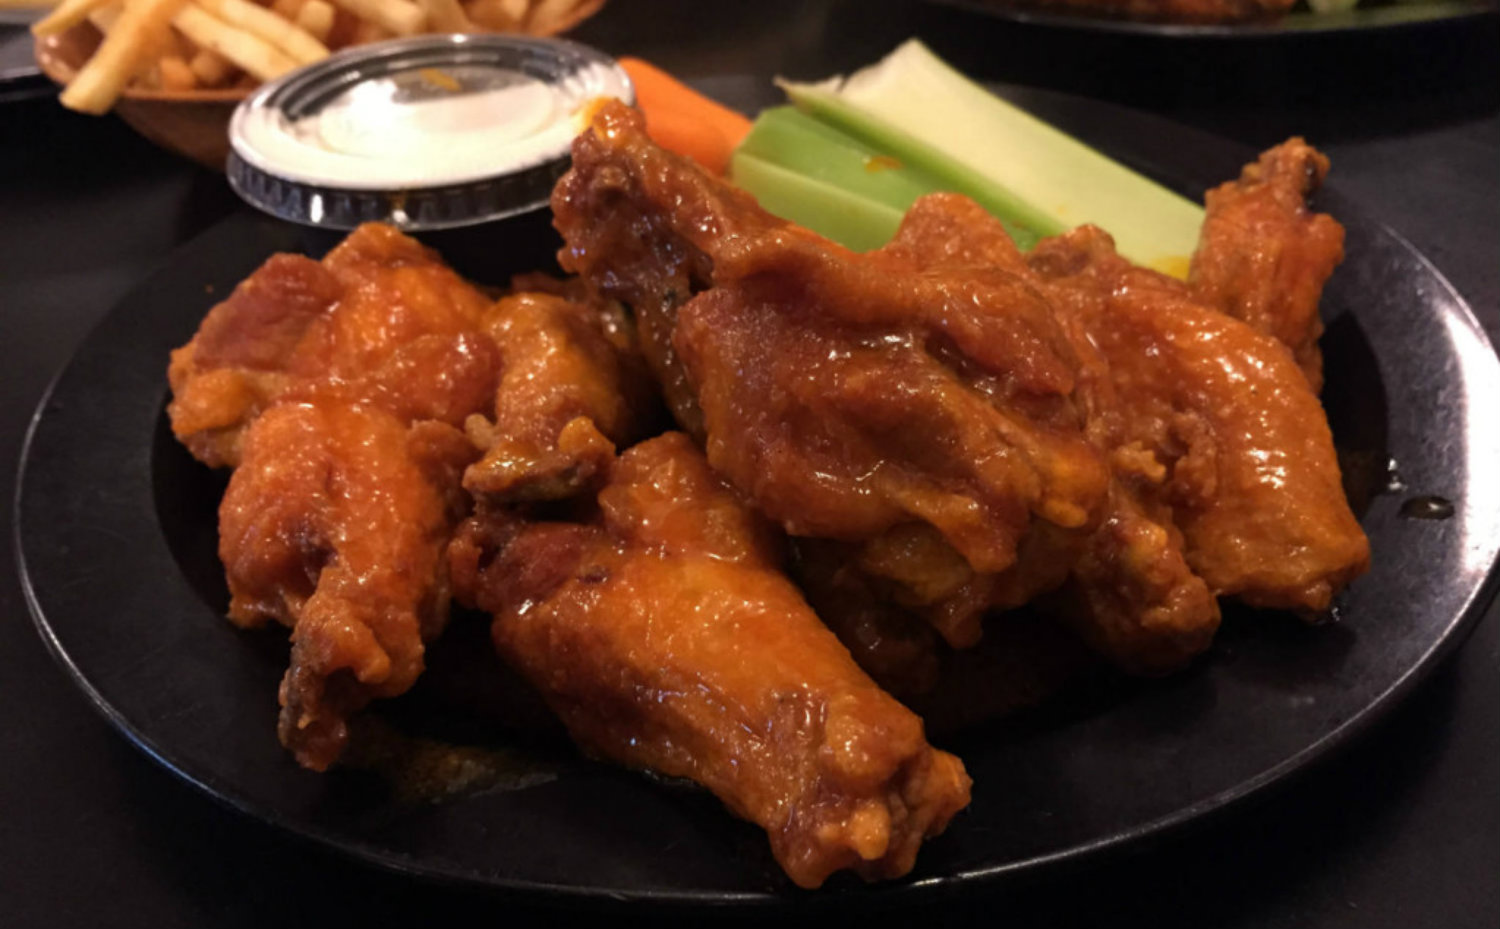 Duff's Famous Chicken Wings in Buffalo, NY - Featured Image